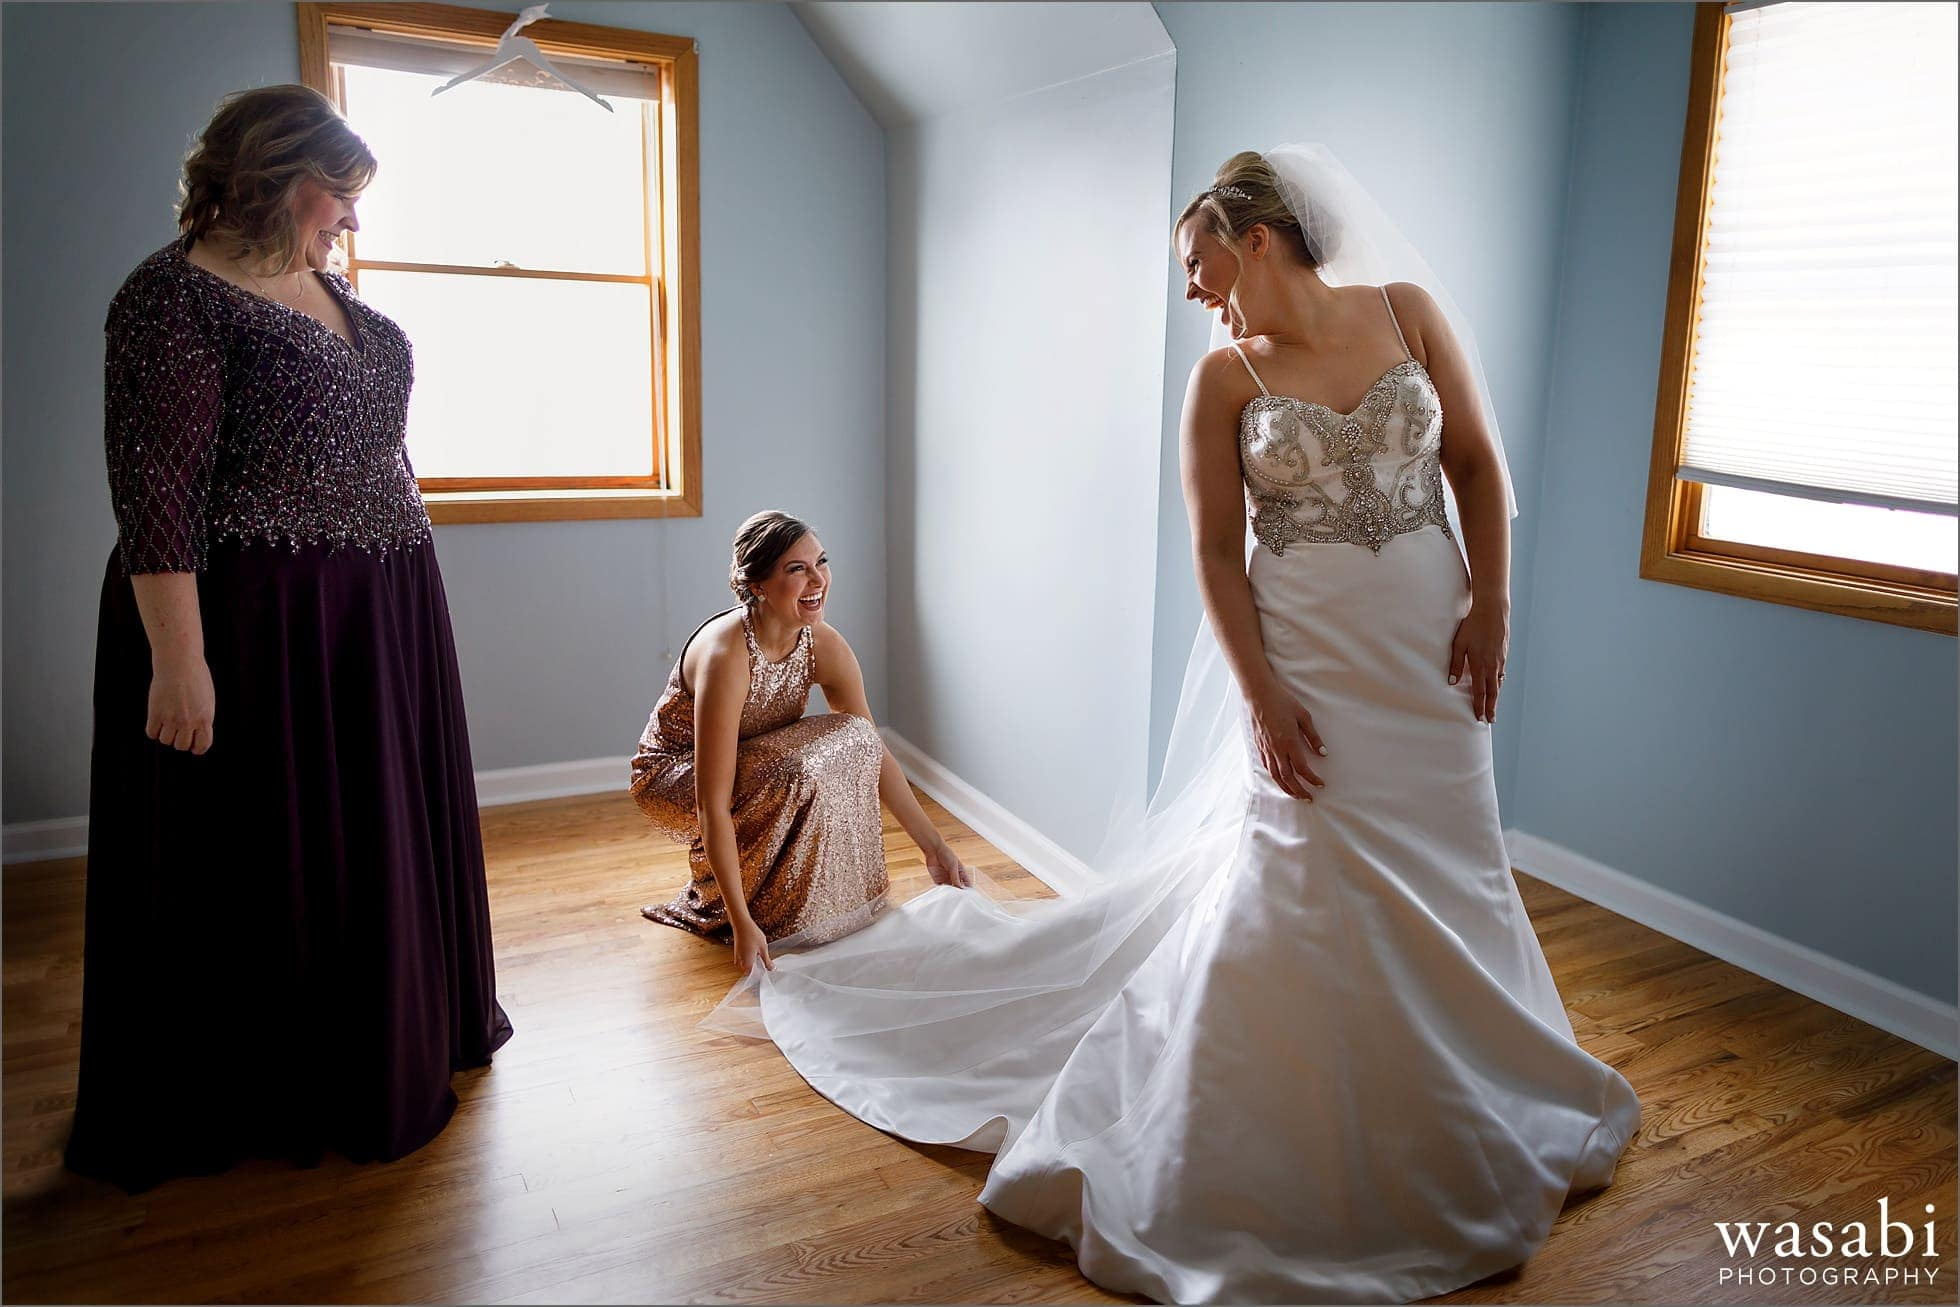 bride steps into dress while bridesmaid helps and mother watches